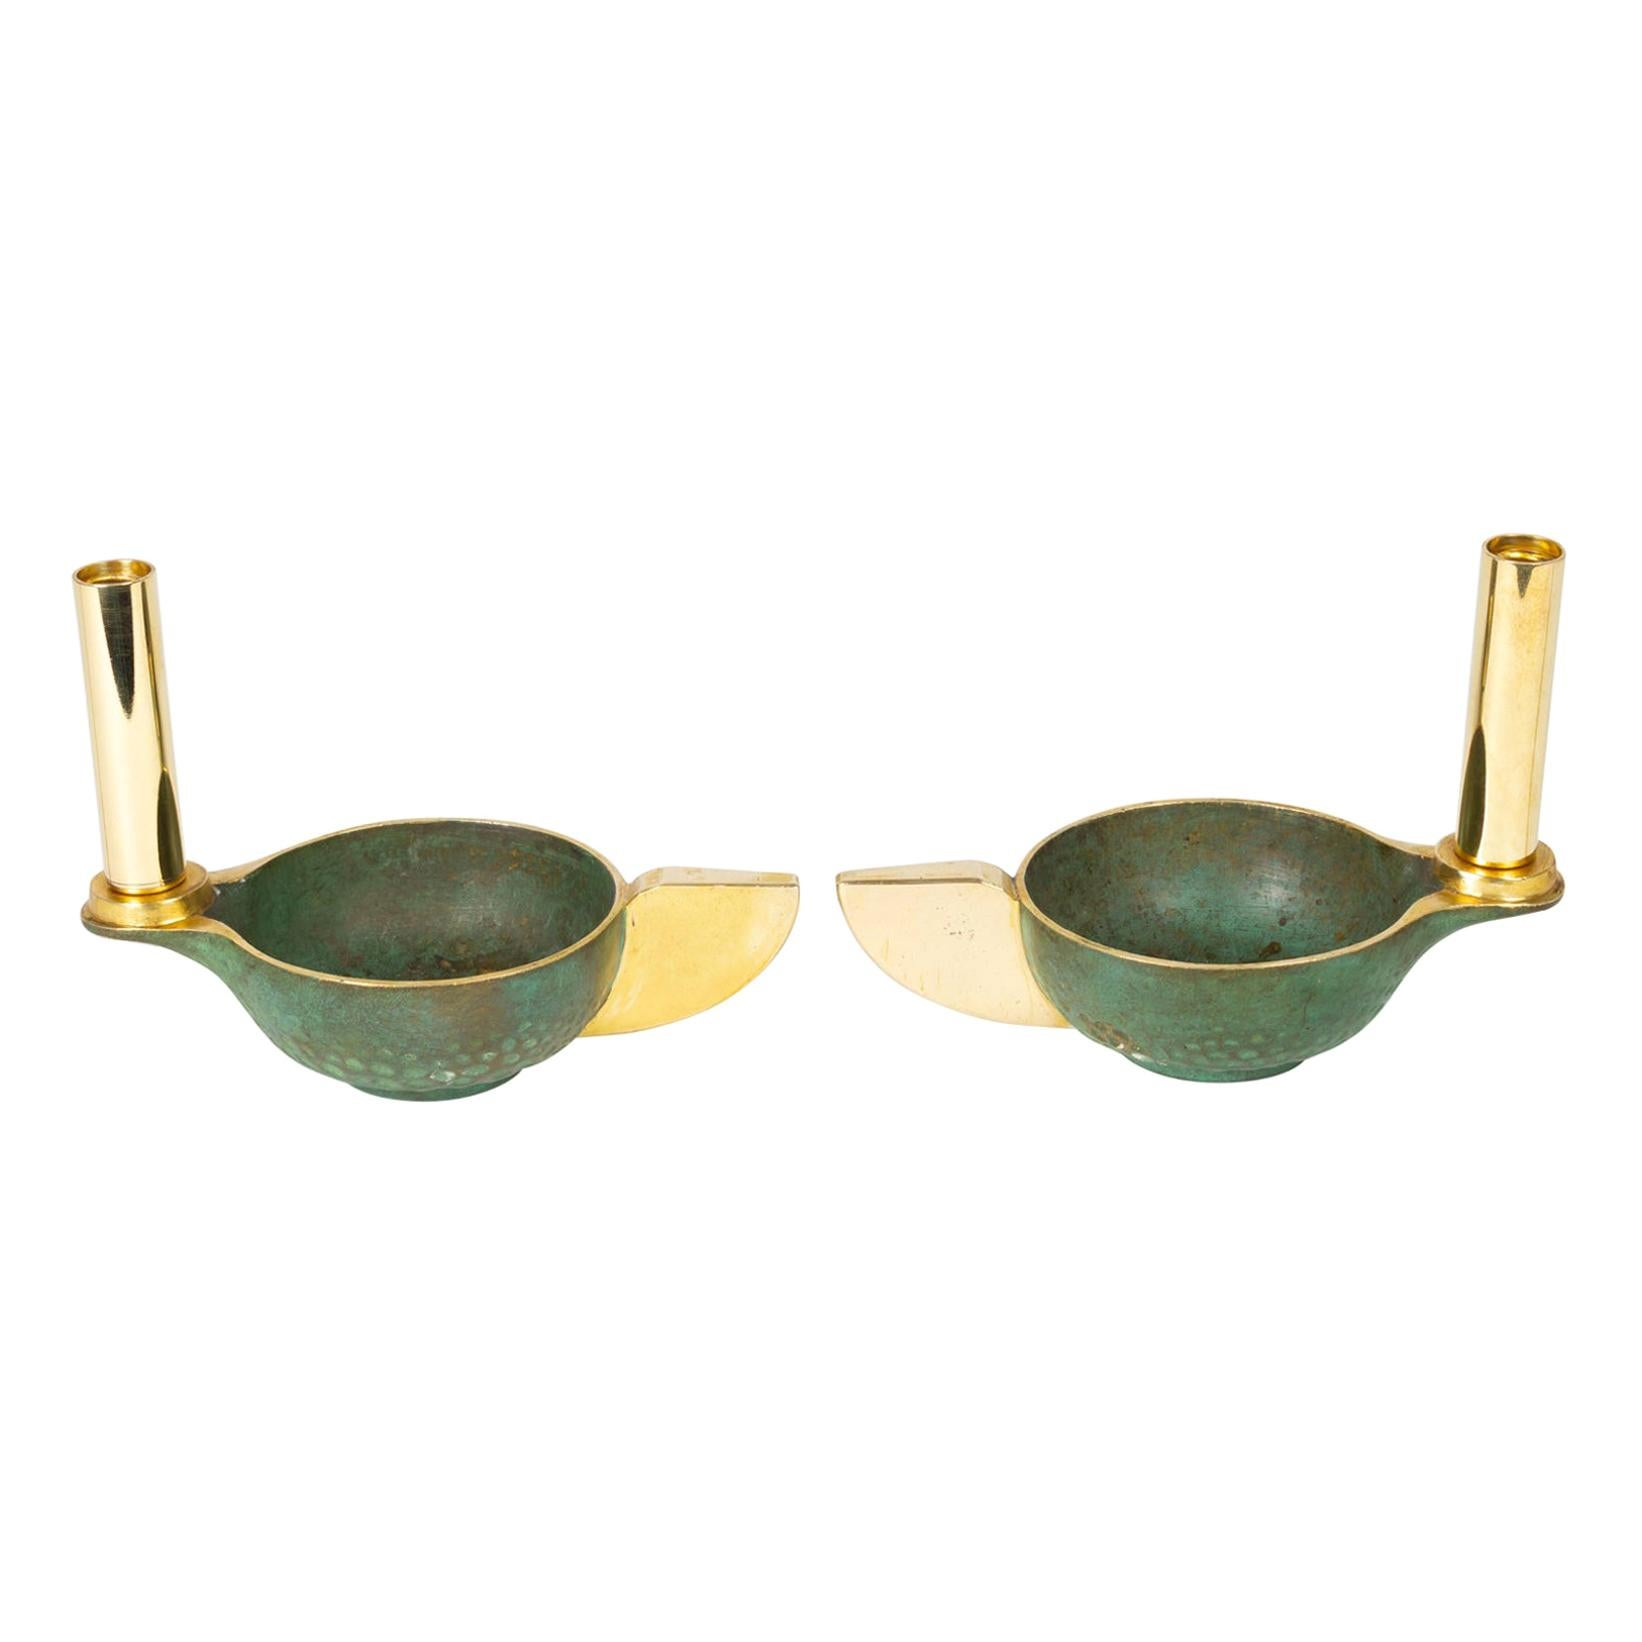 1930 Pair of Bronze Lamps Attributed to André Arbus